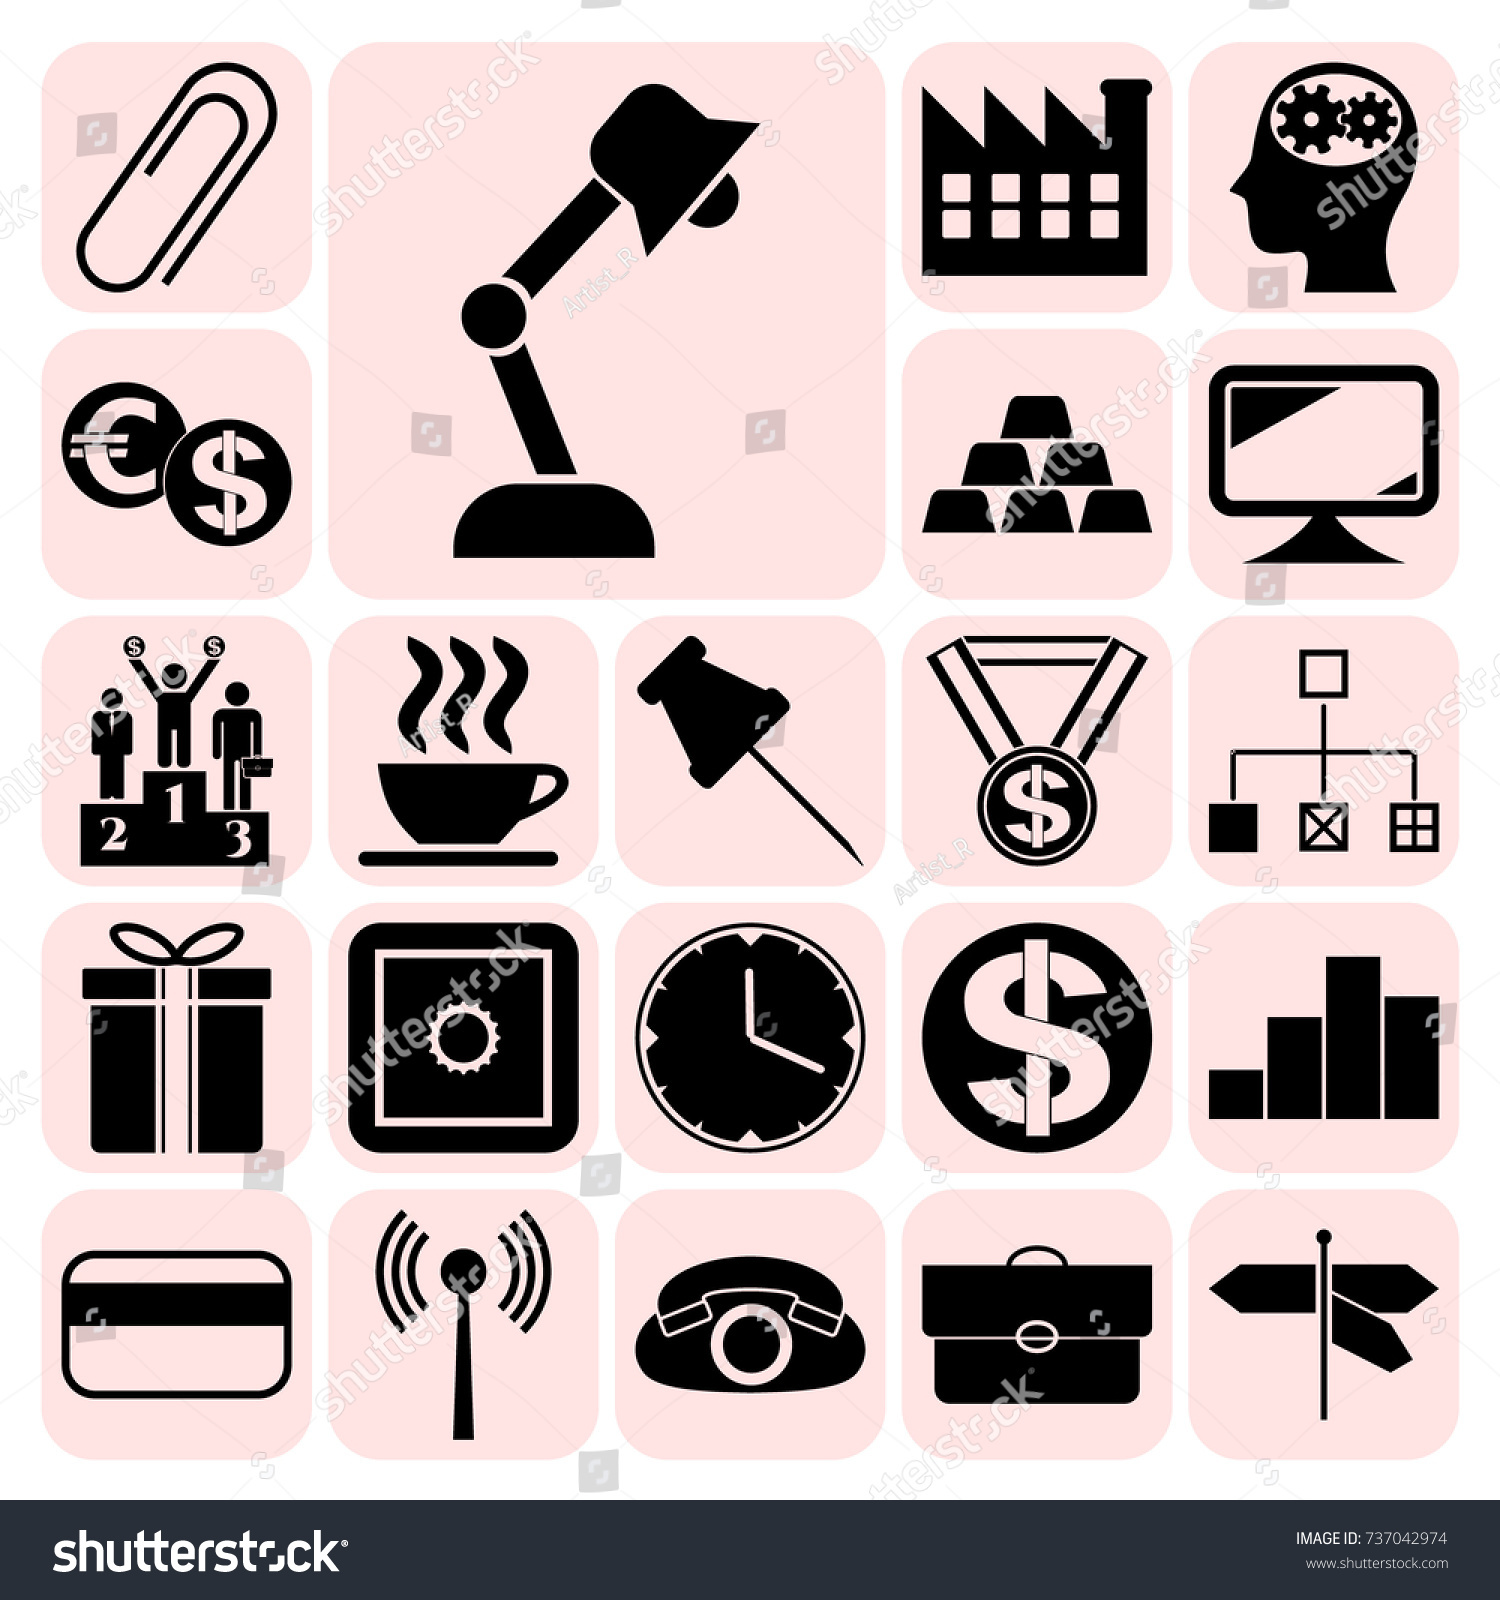 Set 22 Business Symbols Icons Collection Stock Vector 737042974